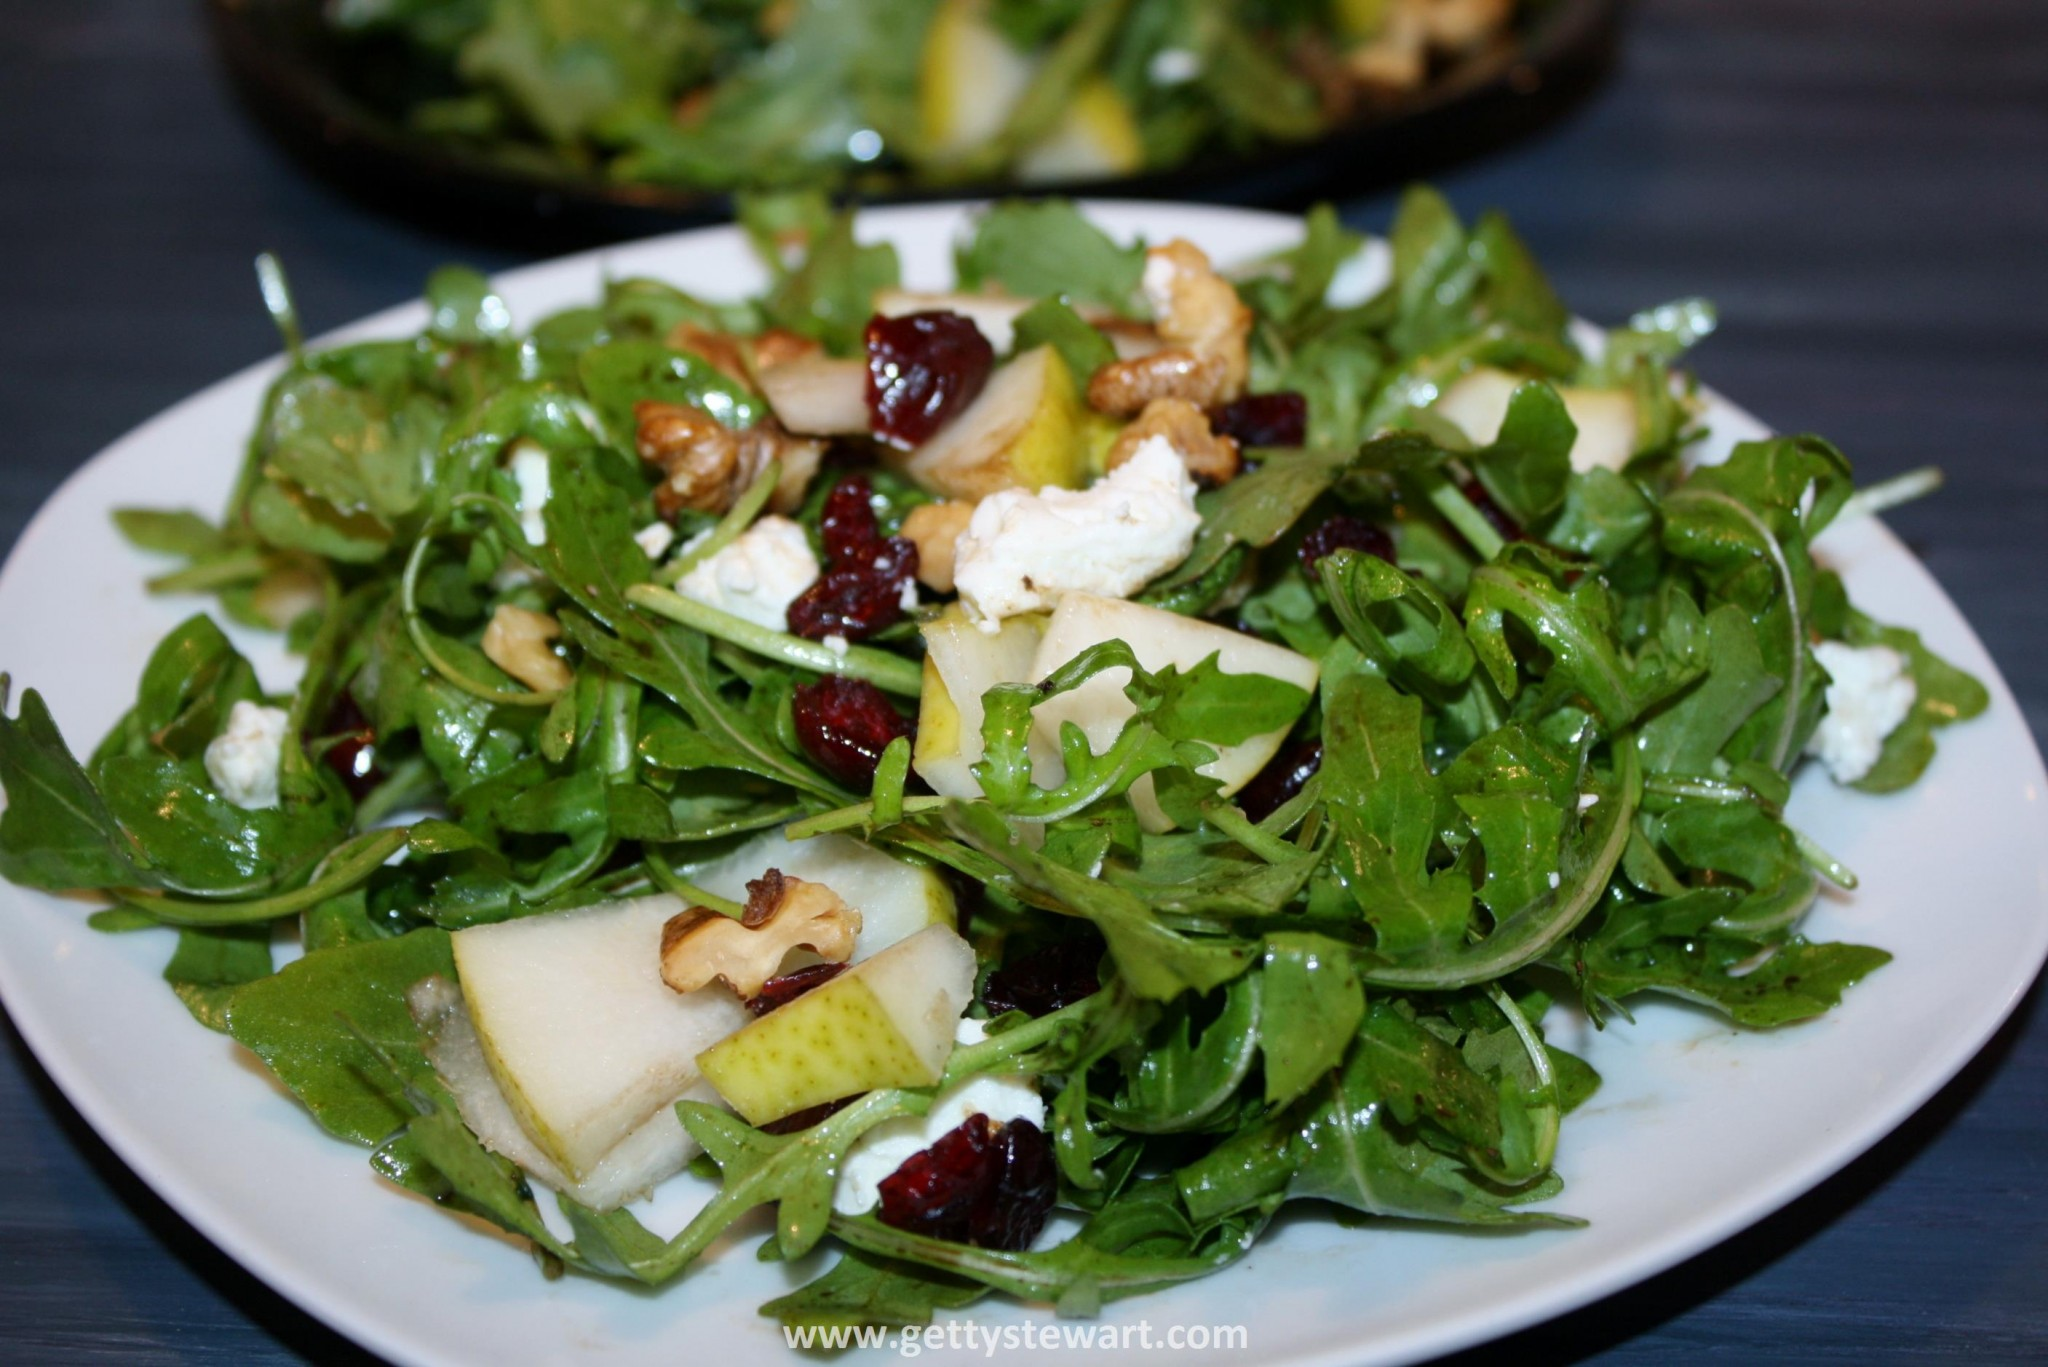 Pear & Arugula Salad with Goat Cheese, Walnuts and Cranberries